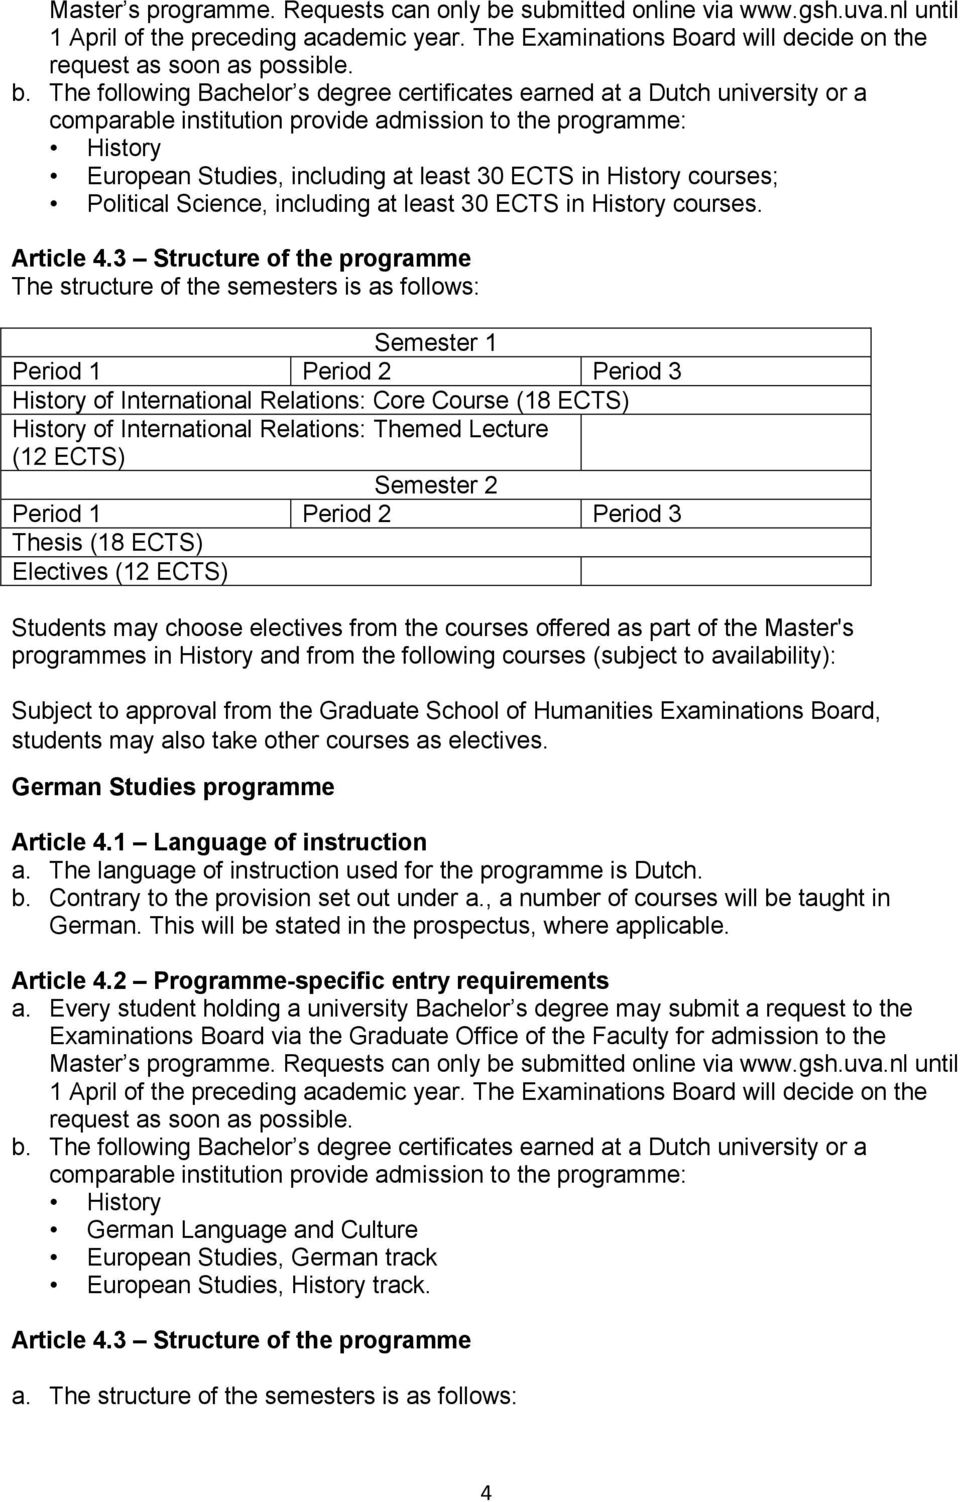 Master's programmes in History and from the following courses (subject to availability): Subject to approval from the Graduate School of Humanities Examinations Board, German Studies